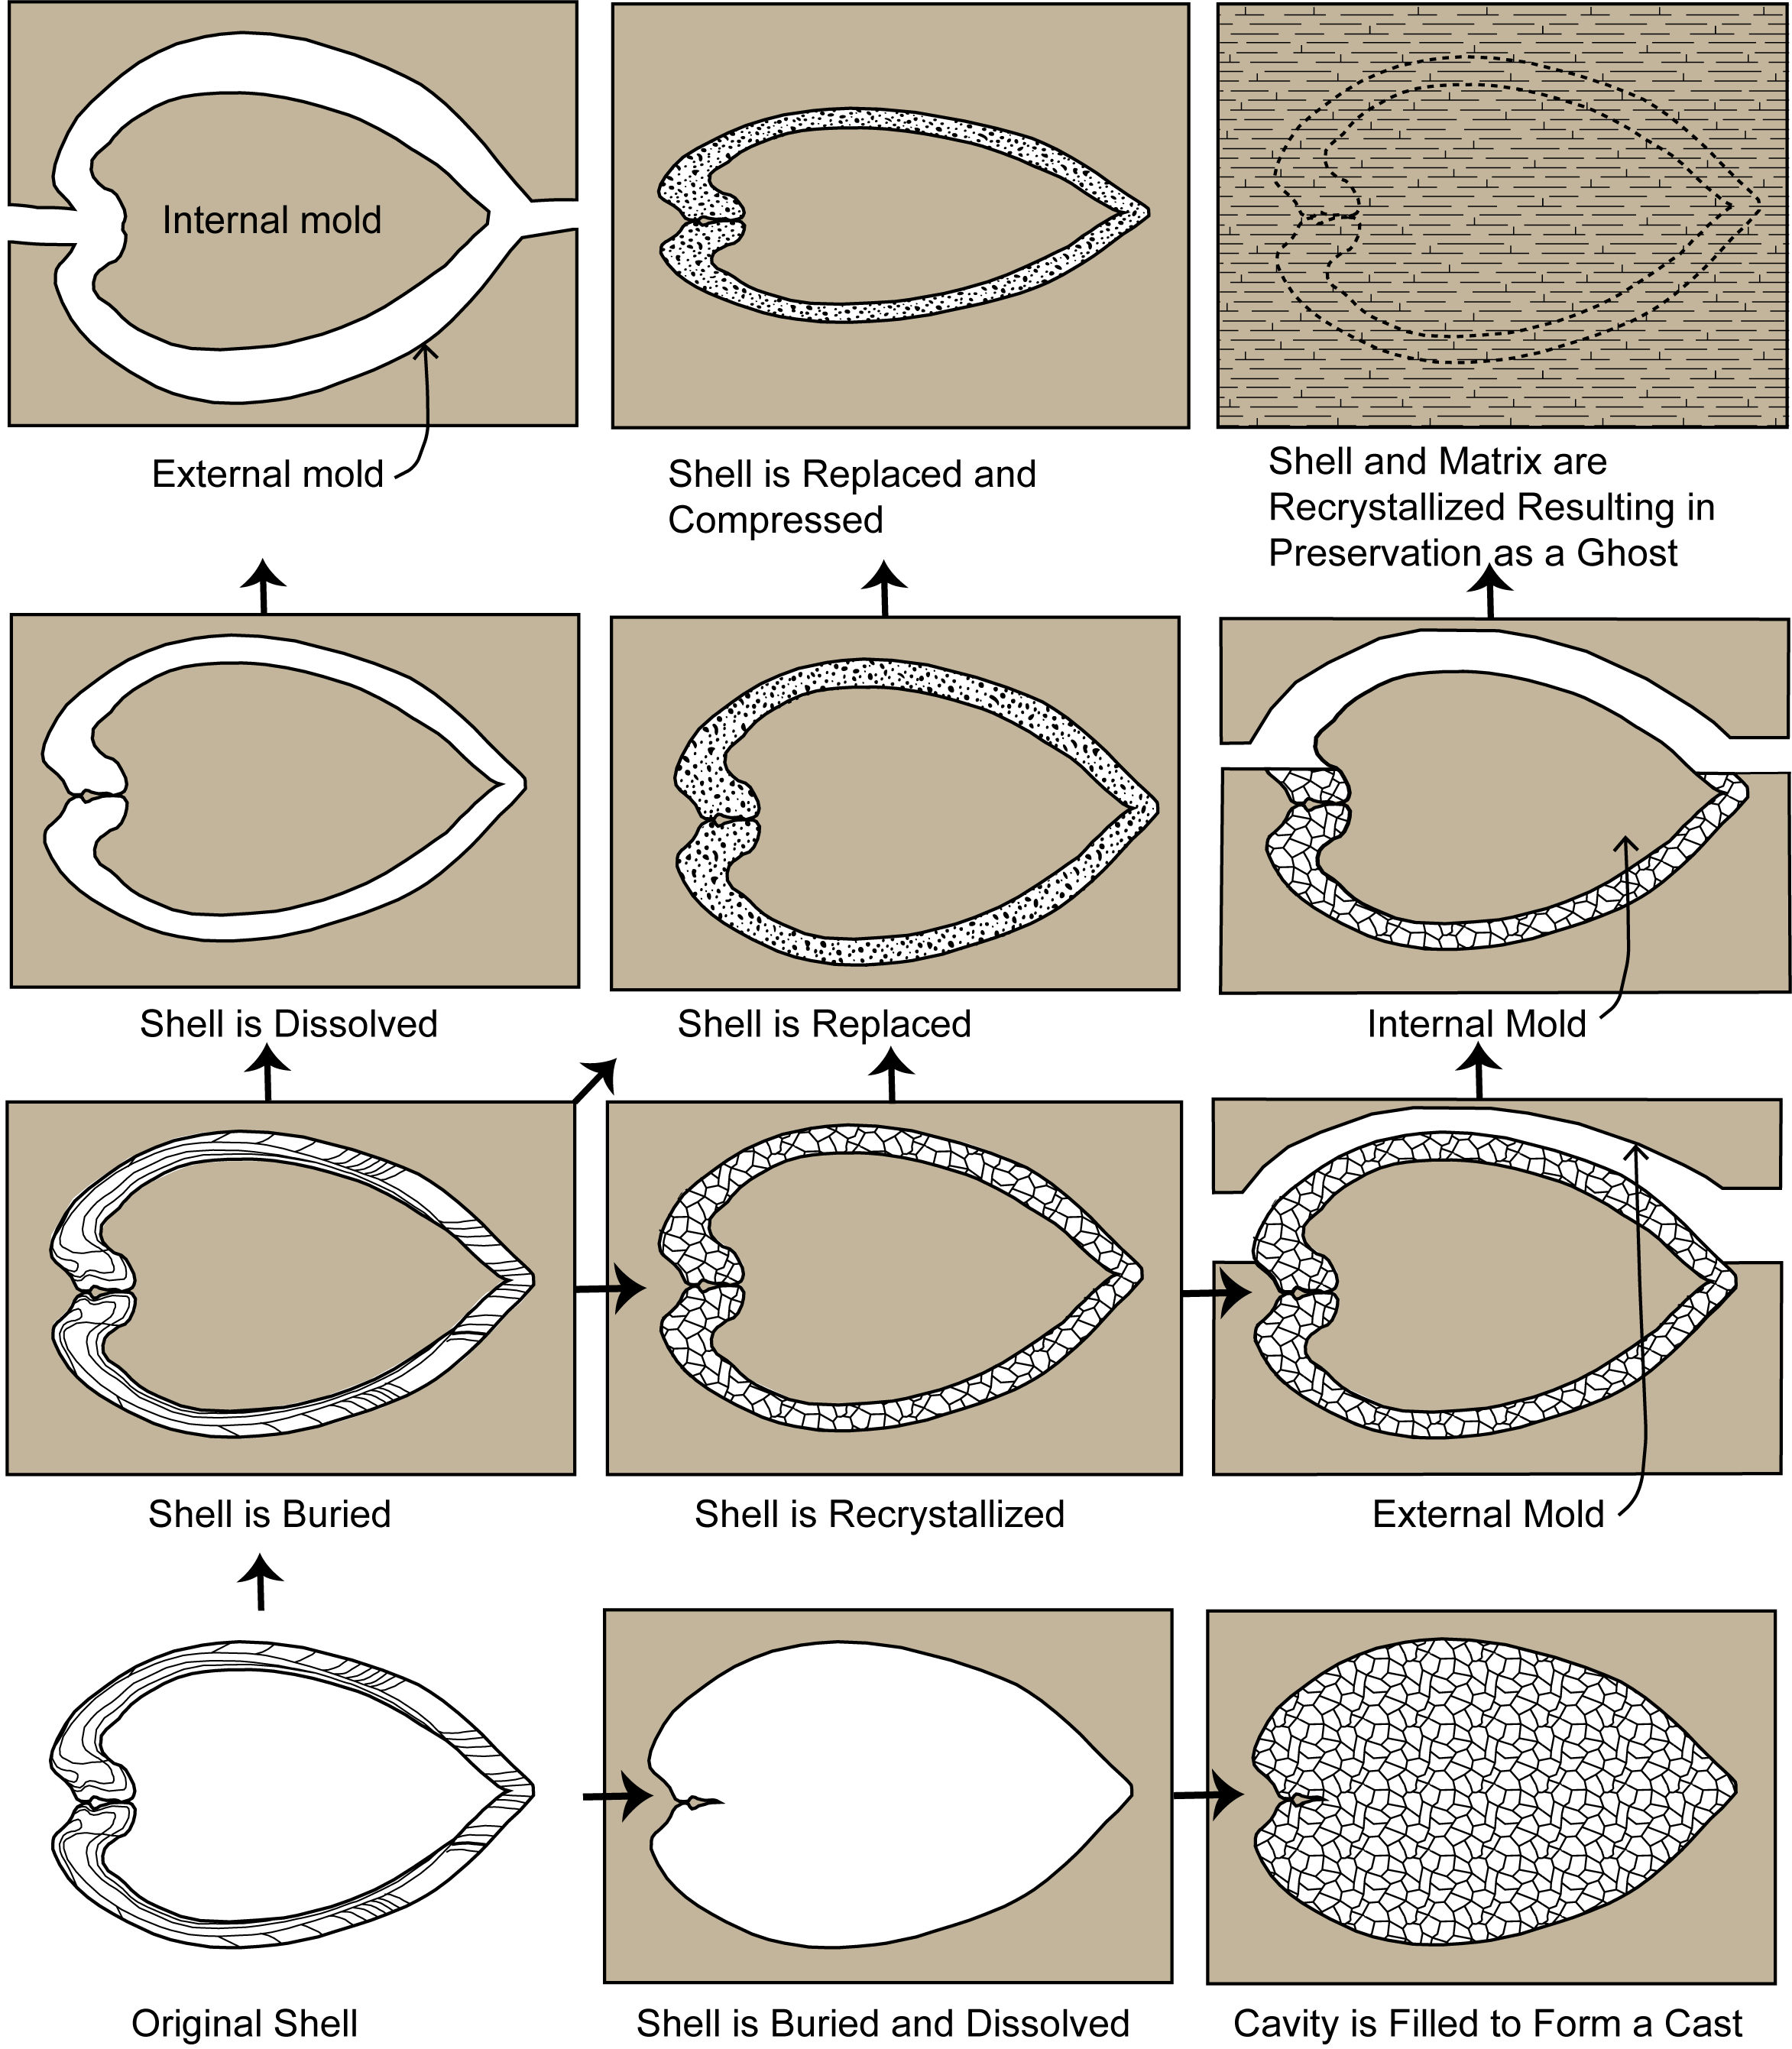 Types of fossilization including alteration, replacement that result in casts and molds.